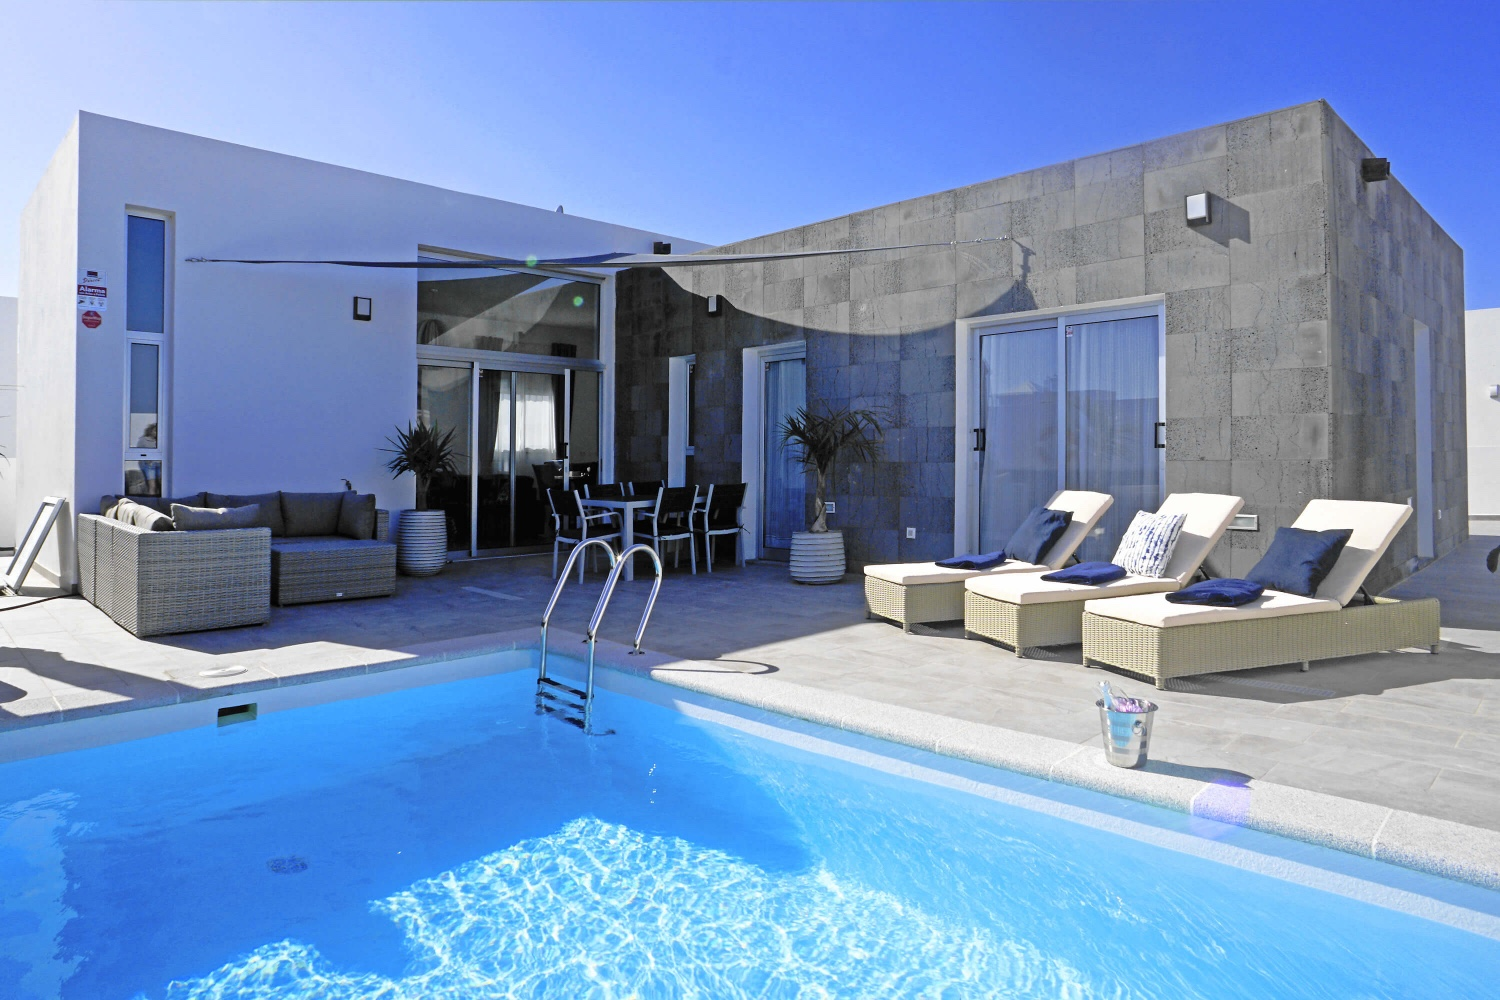 Modern and completely new furnished villa, close to the beautiful beaches of Papagayo and Marina Rubicón marina